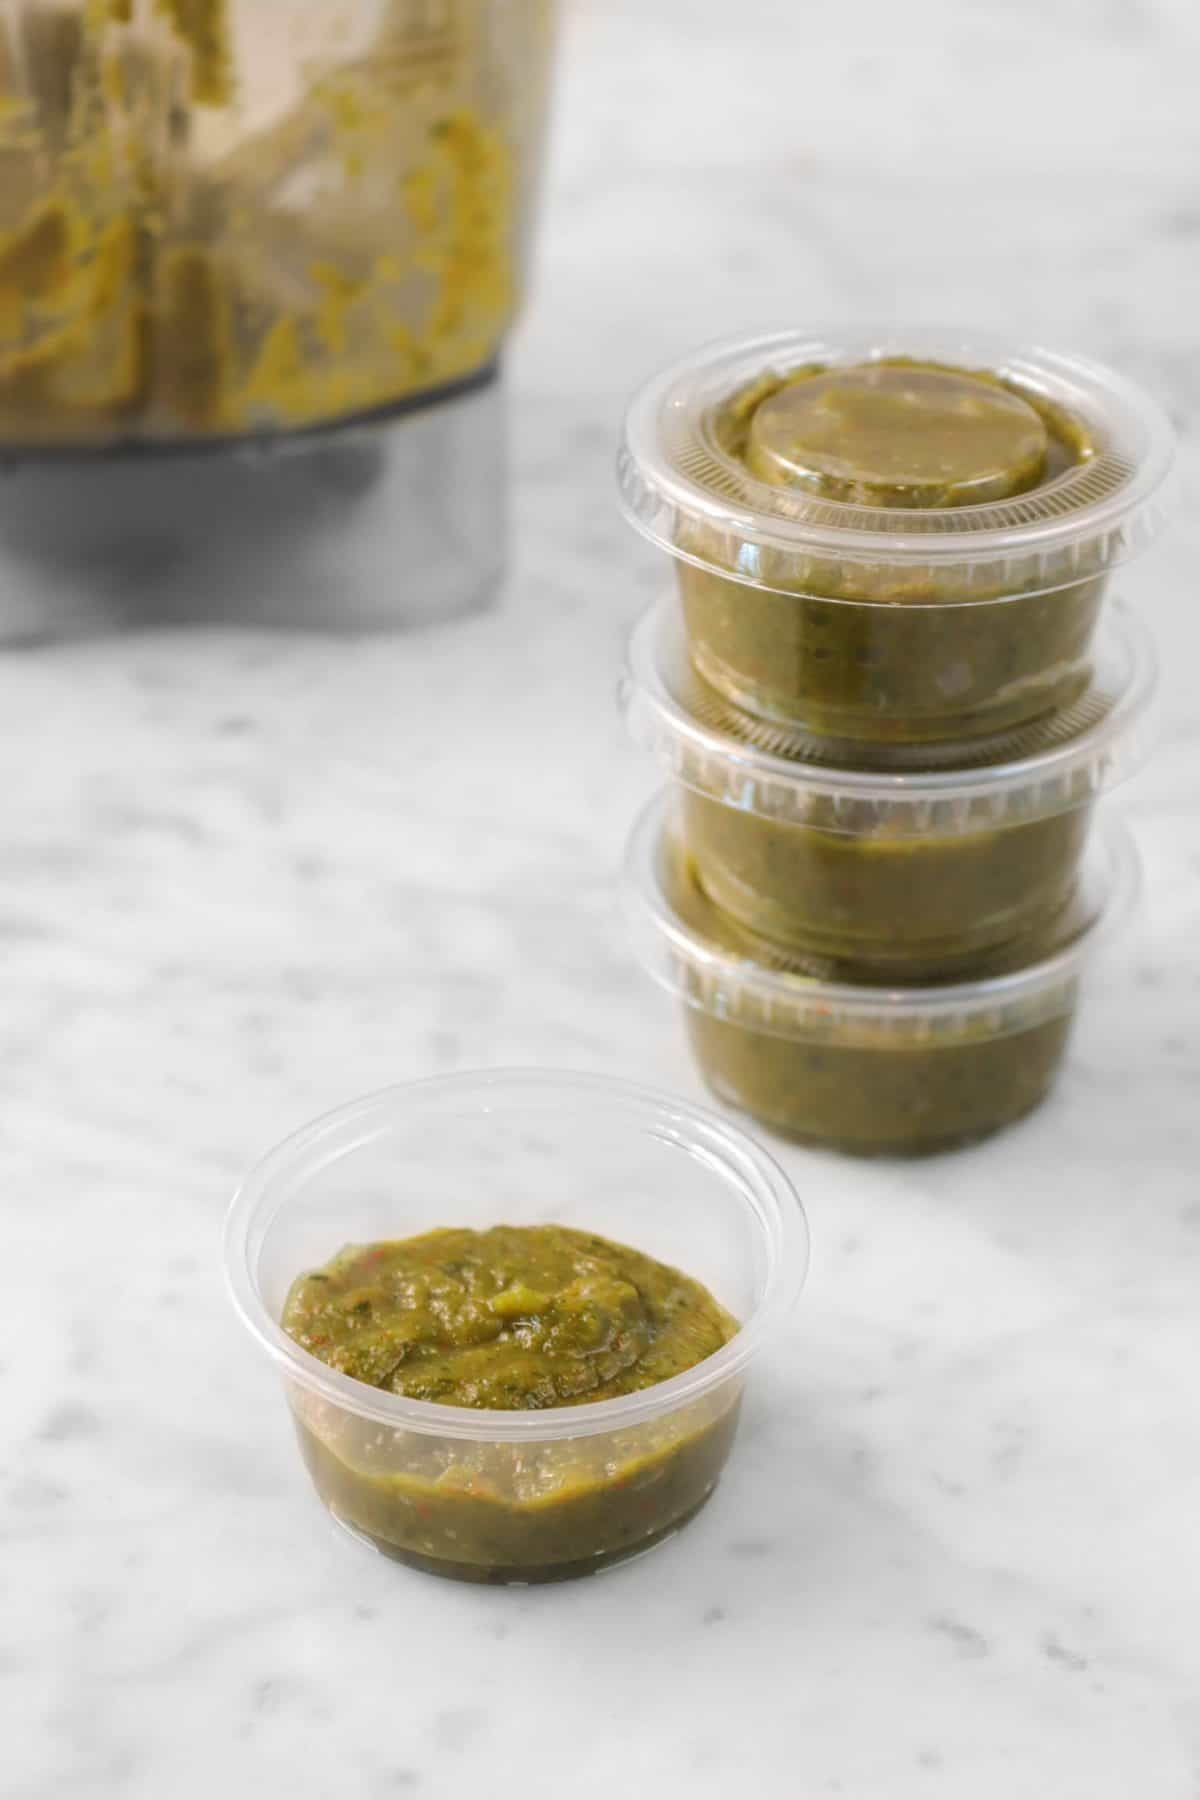 chili paste in small plastic containers on a marble counter with a blender in the background